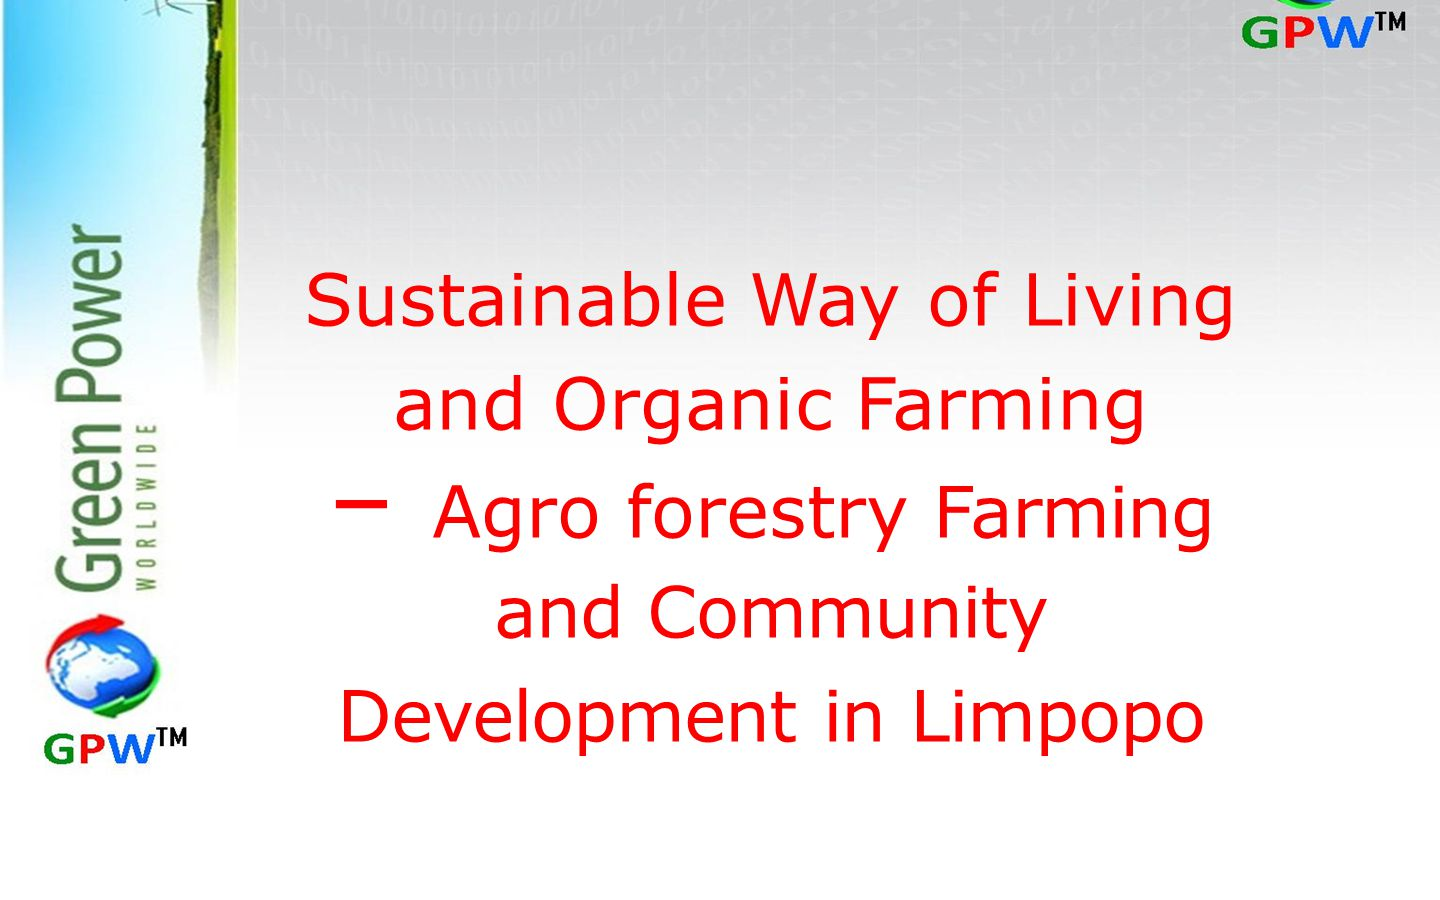 Sustainable Way of Living and Organic Farming – Agro forestry Farming and Community Development in Limpopo